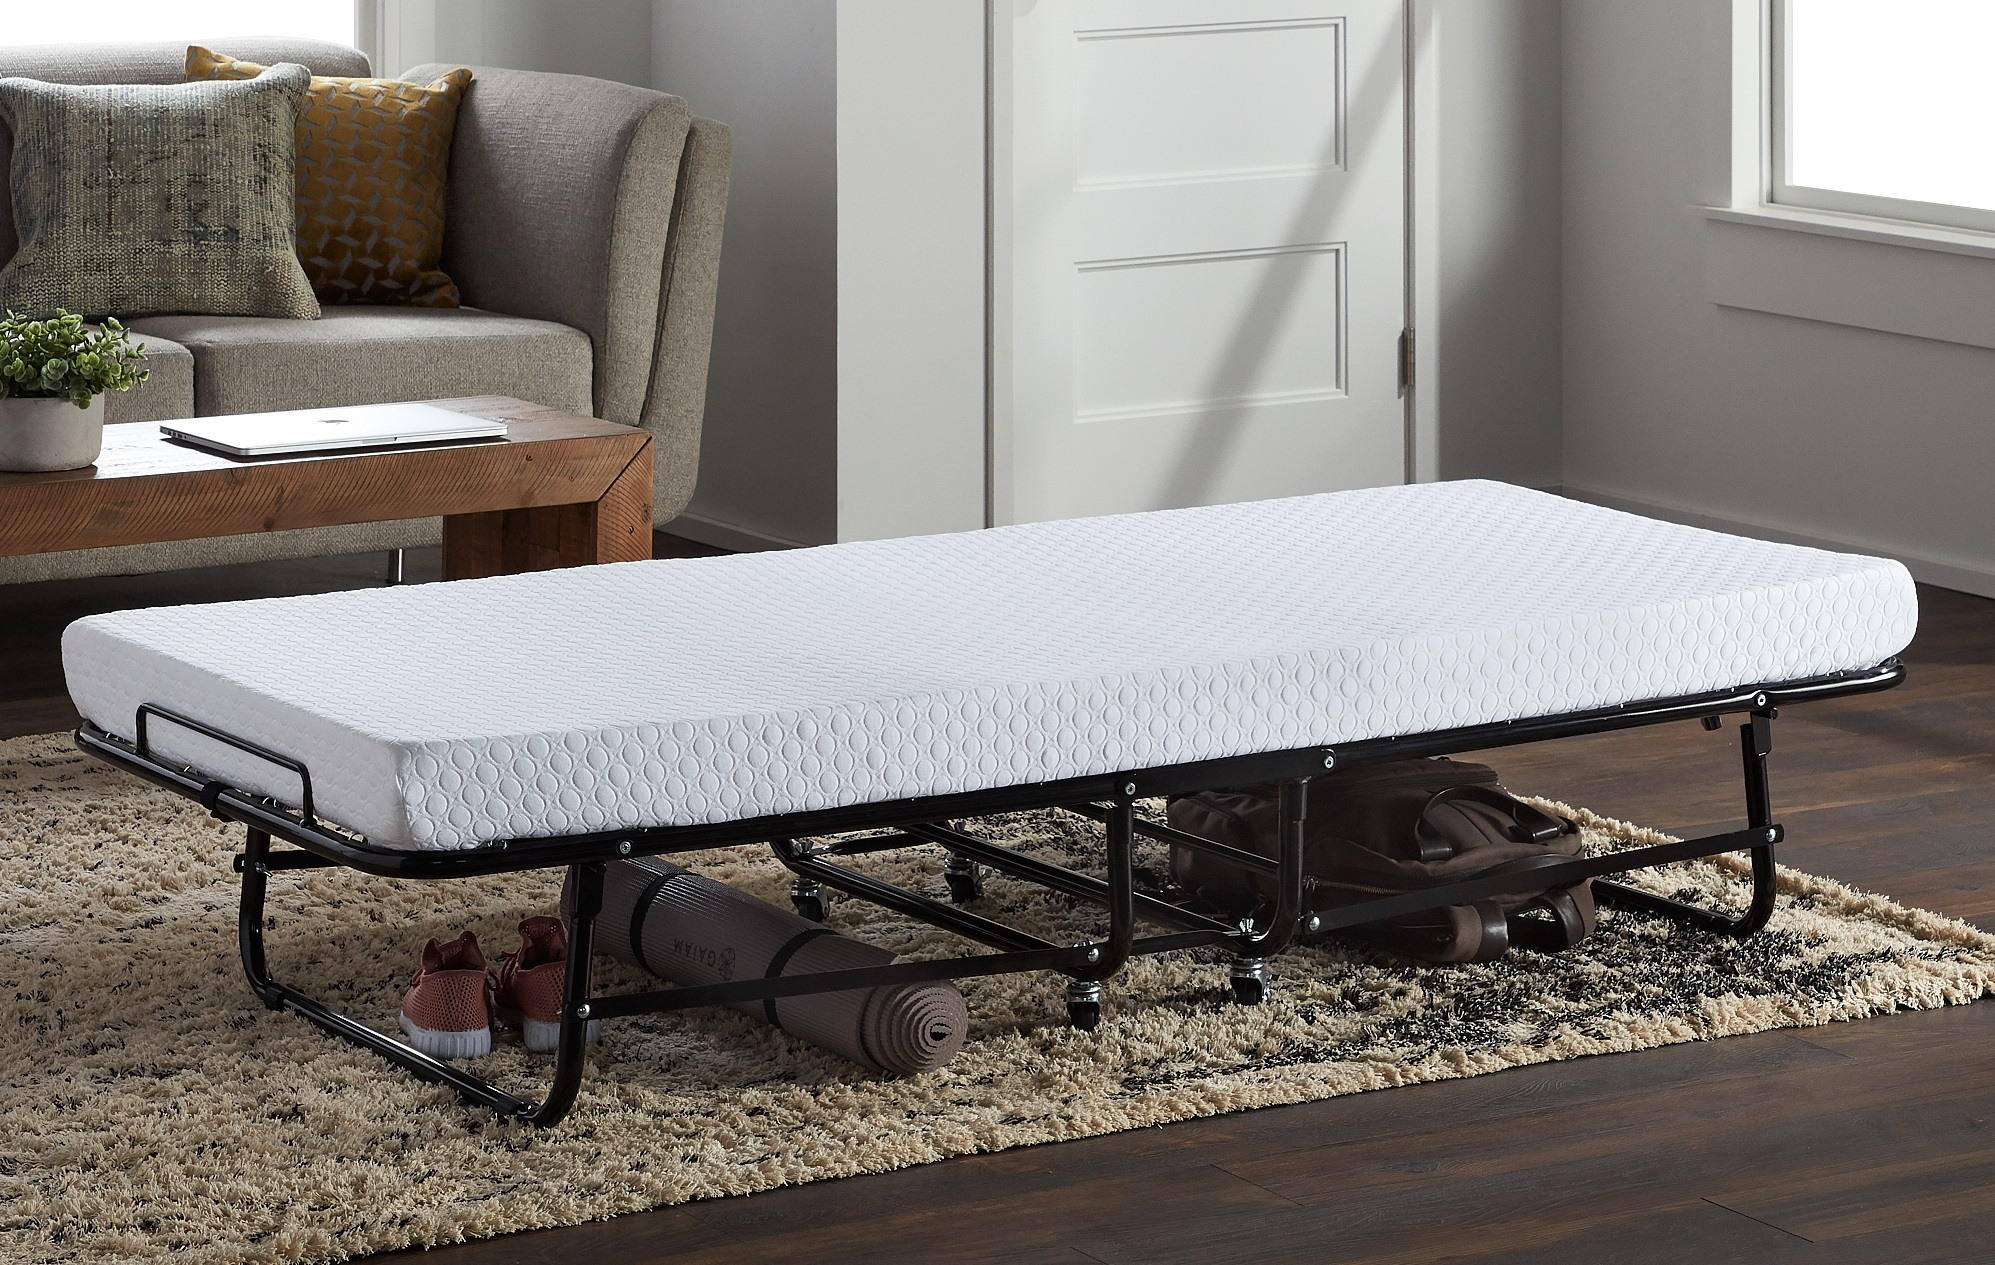 A rollaway folding bed that is comfortable